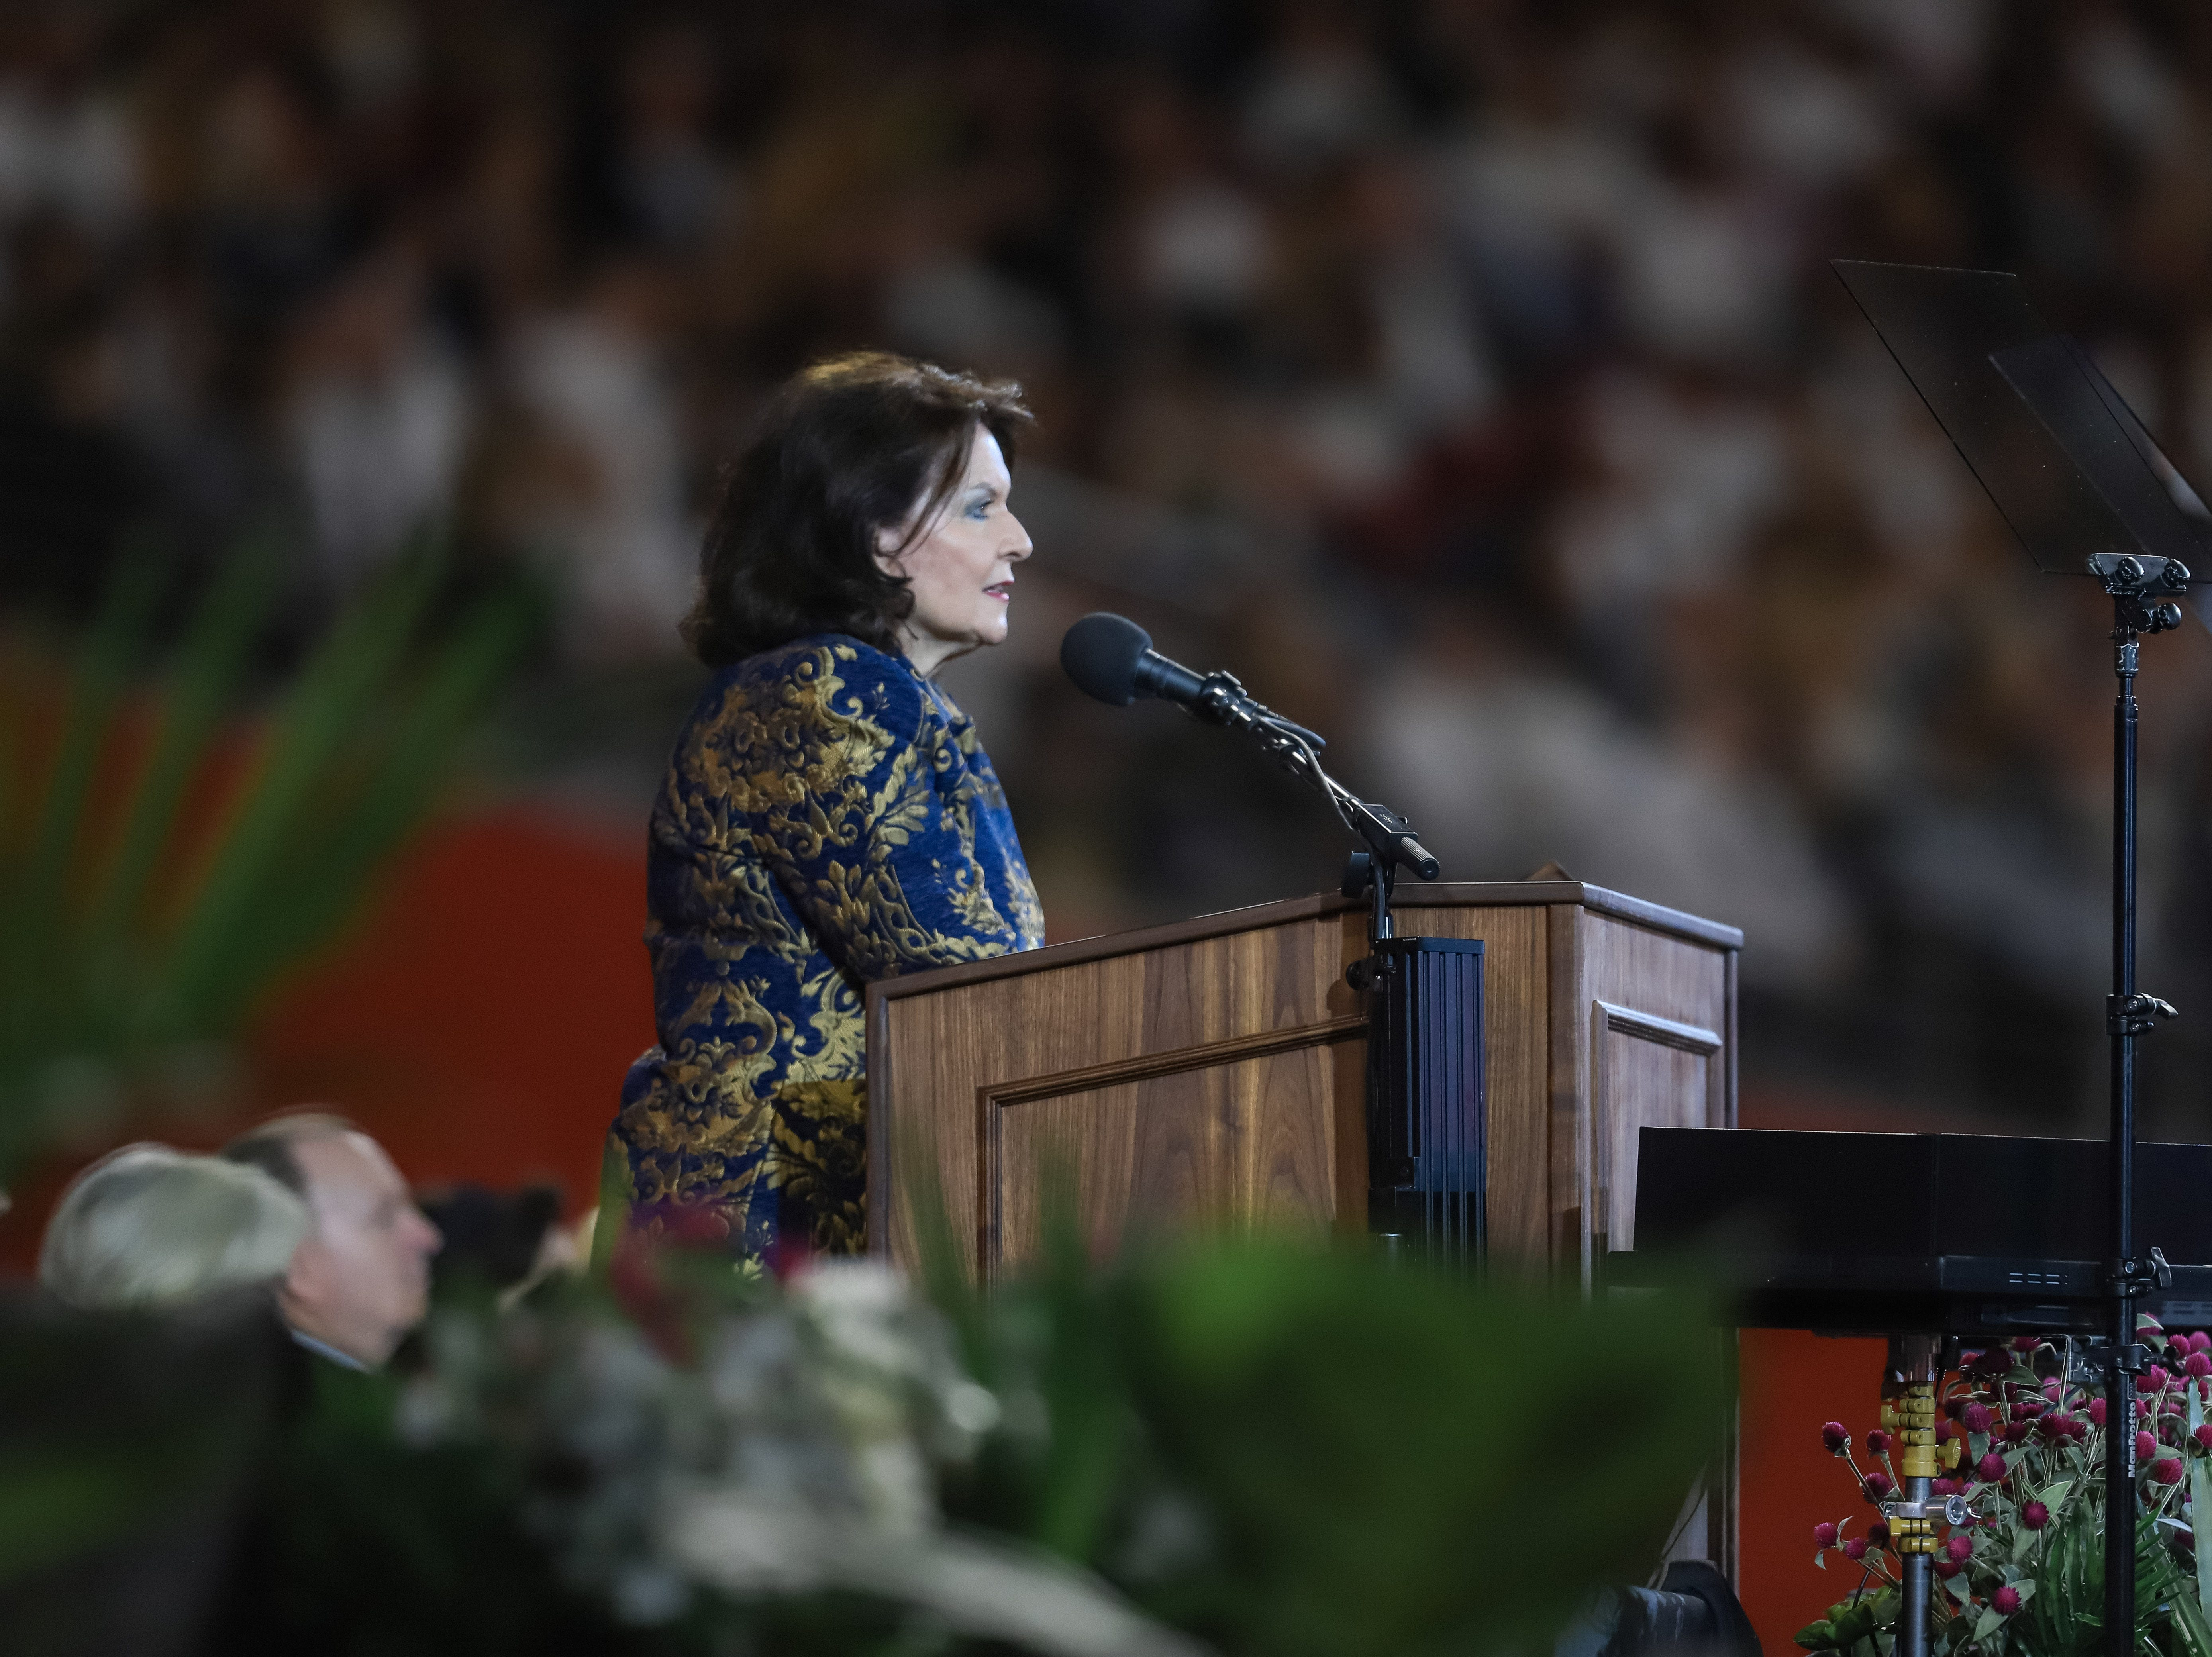 Wendy Watson Nelson, the wife of President Russell M. Nelson, prophet of the Church of Jesus Christ of Latter-day Saints, speaks at State Farm Stadium in Glendale, Arizona on Sunday, Feb. 10, 2019.